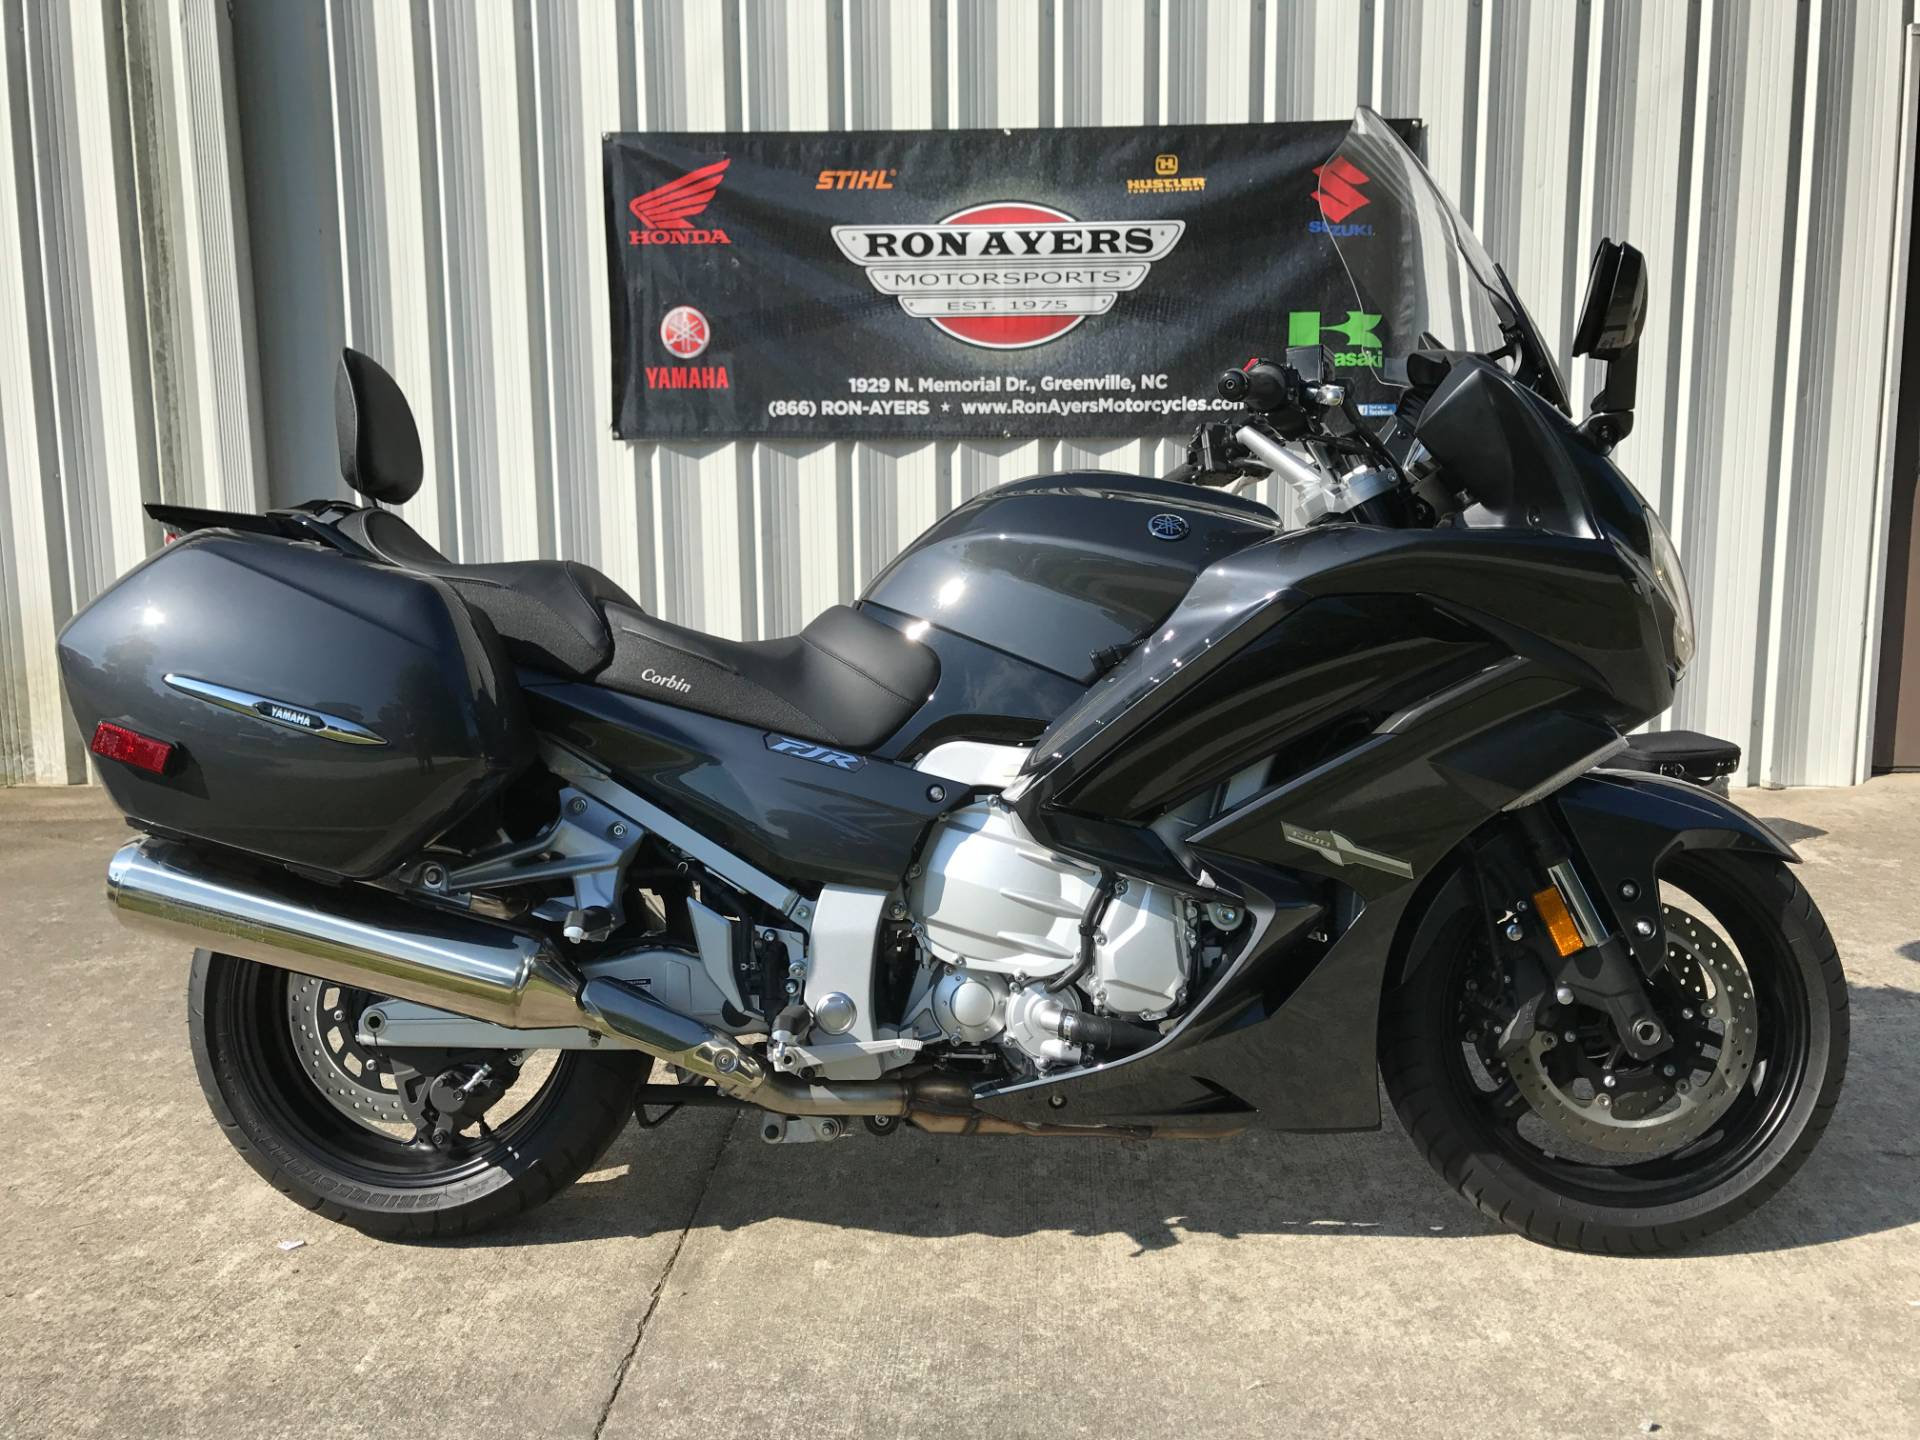 Ron ayers motorsports inventory dealer in greenville nc for Yamaha dealers nc